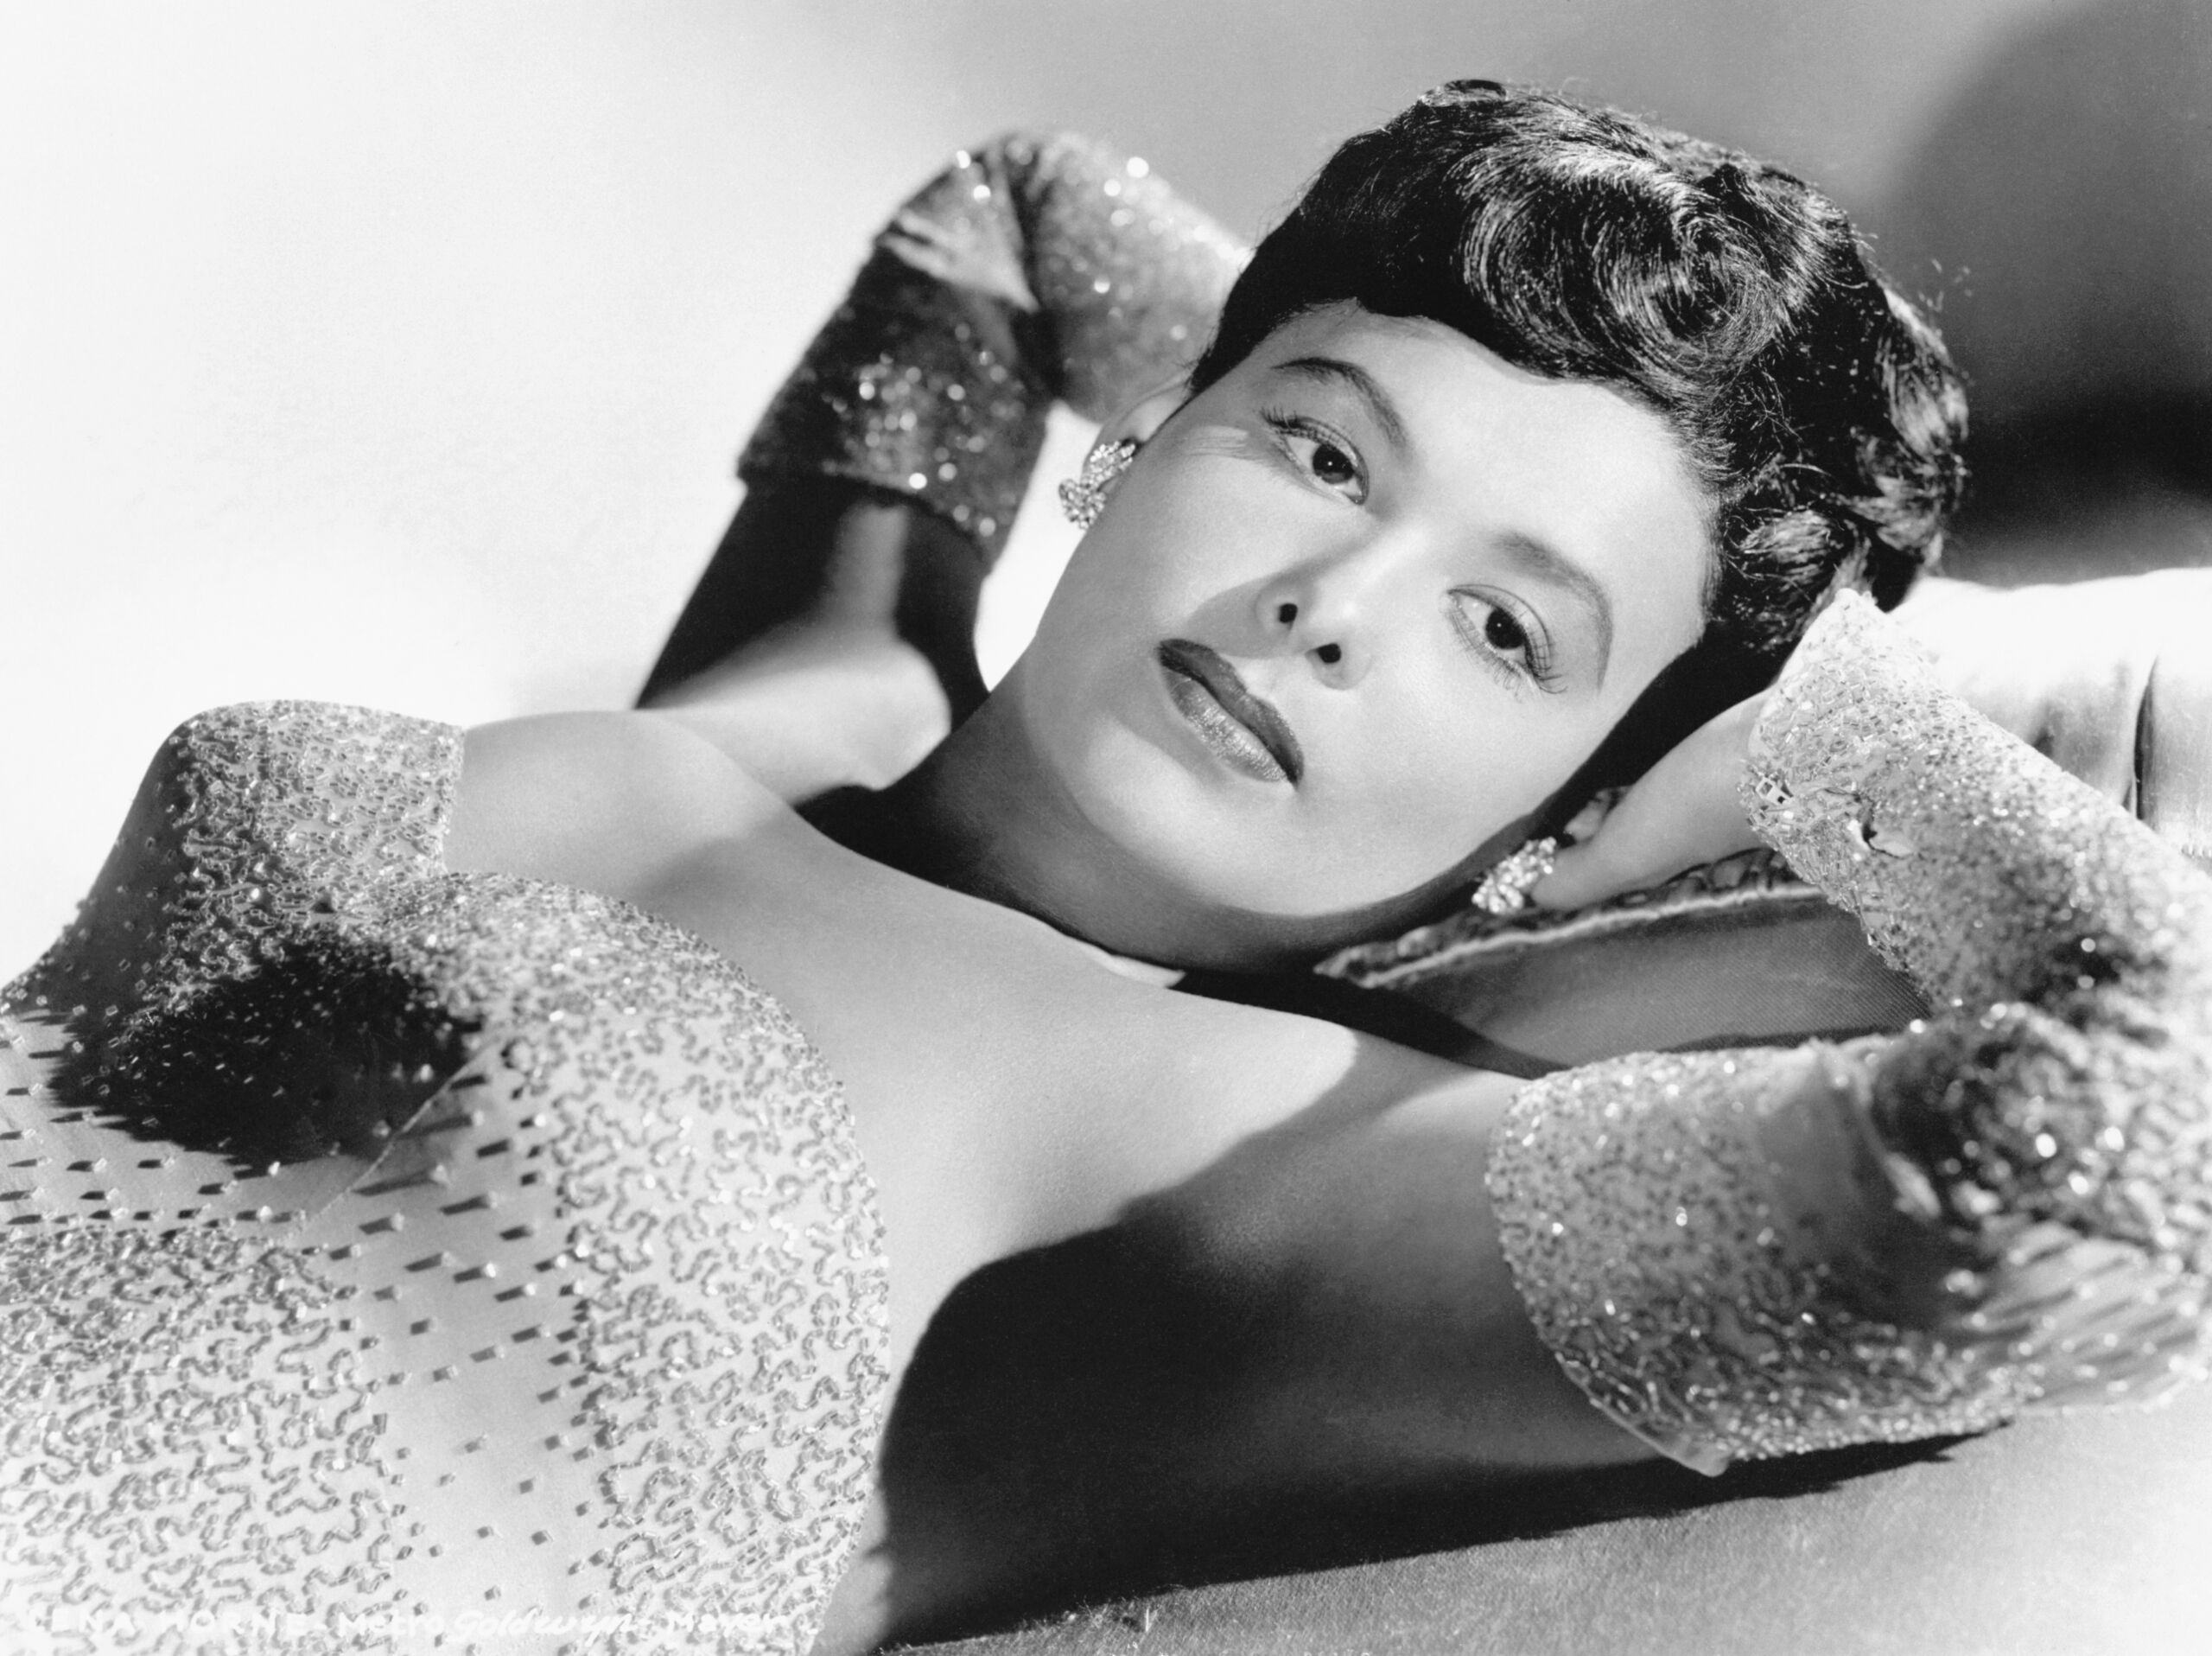 A light-skinned Black woman reclines in a sequined gown with her head resting in her hands.